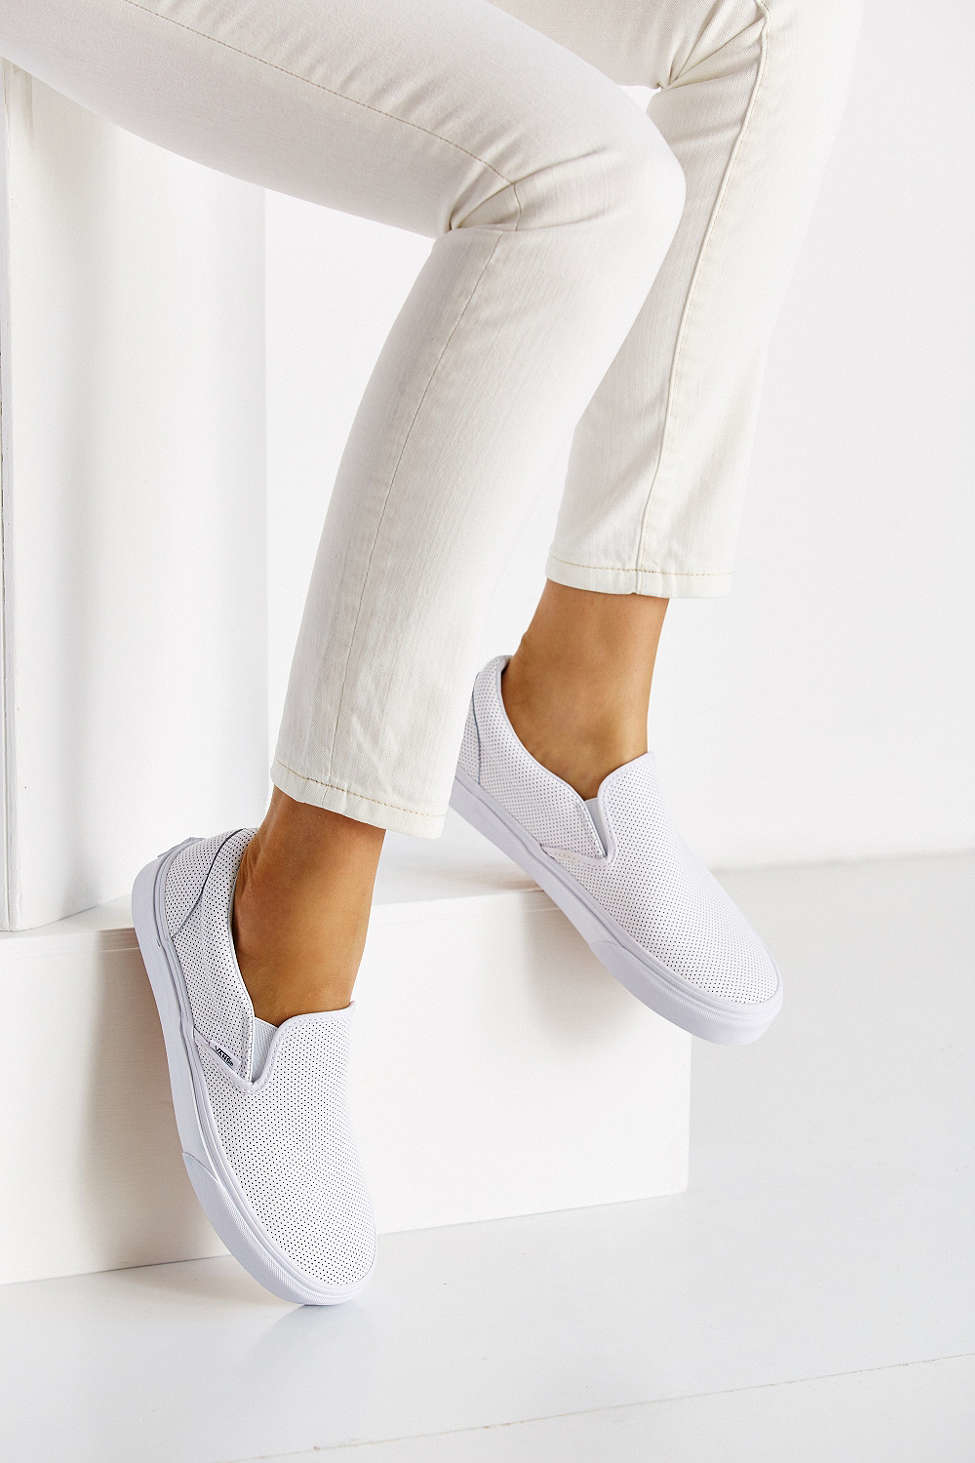 7dbe31a7048 Lyst - Vans Perforated Leather Slip-on Sneaker in White